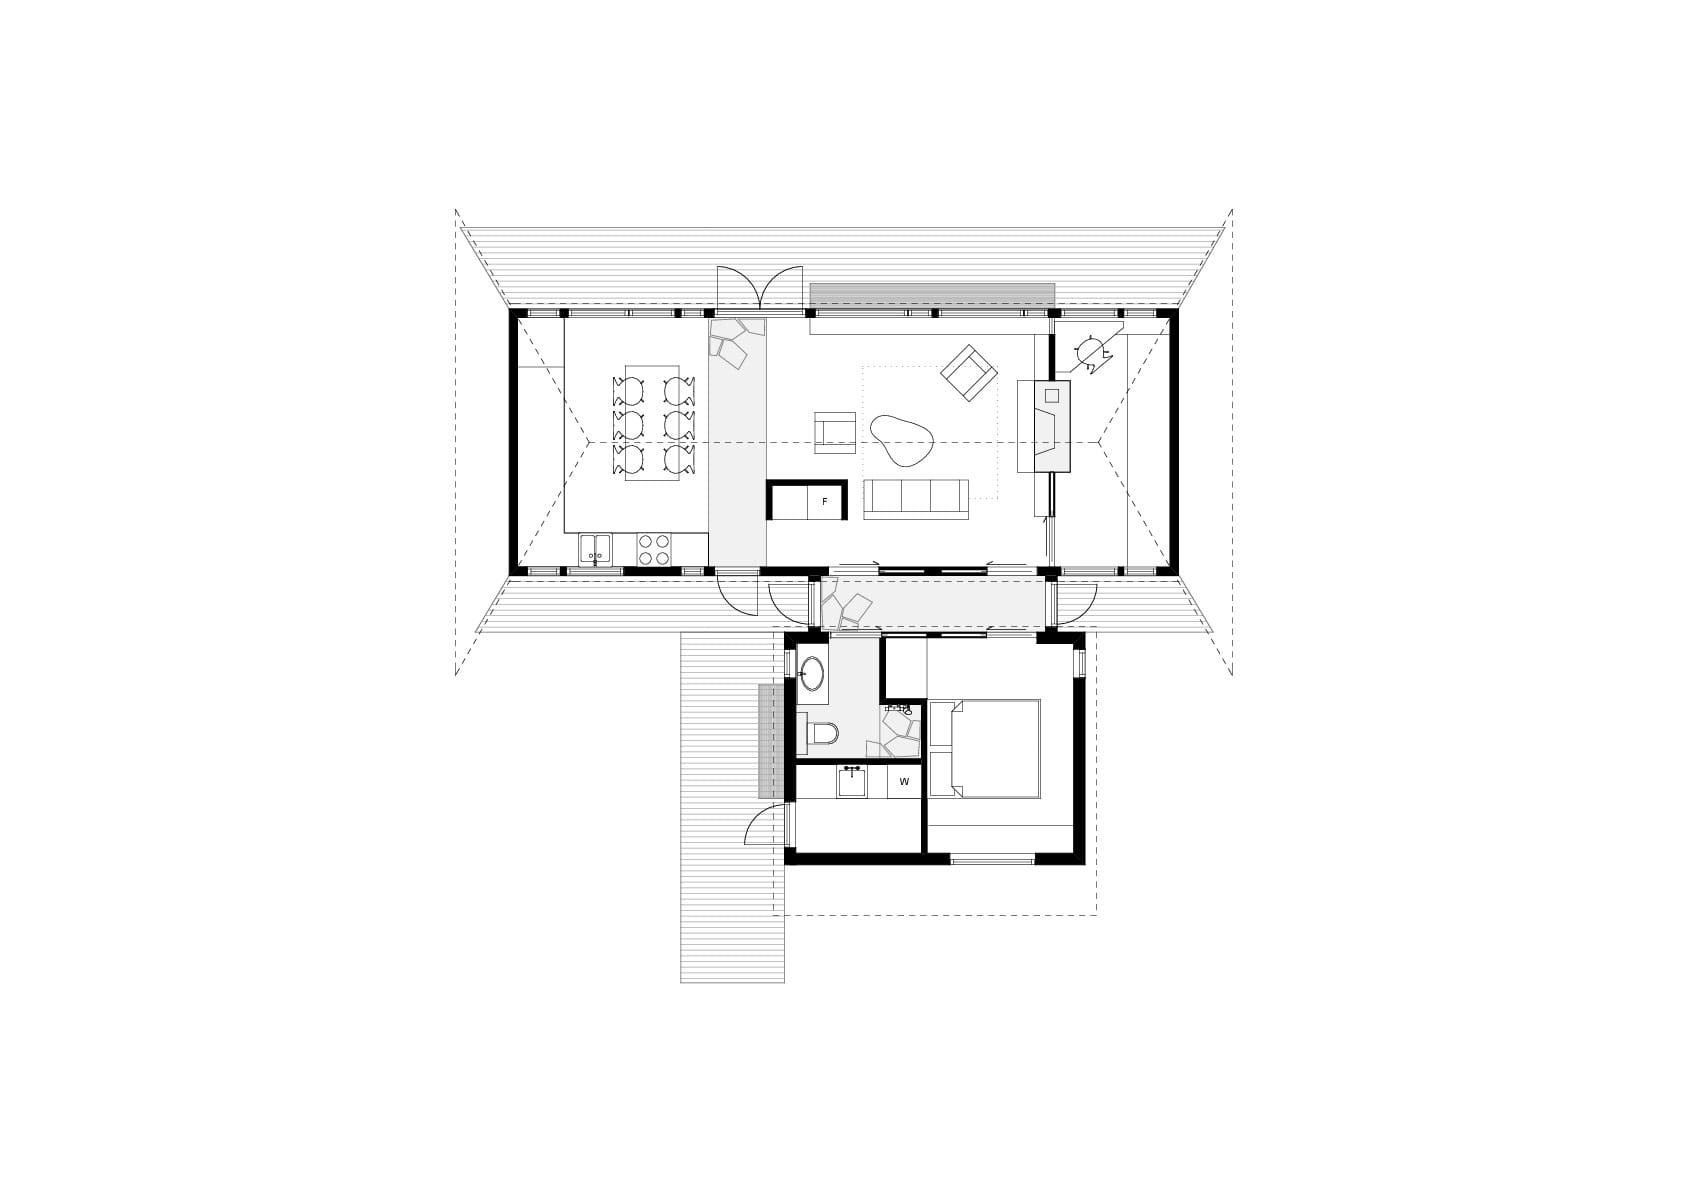 Шале Selestranda House в виде пирамиды на побережье Норвегии, HQ architecture, HQarch, HQ arch, high quality architecture